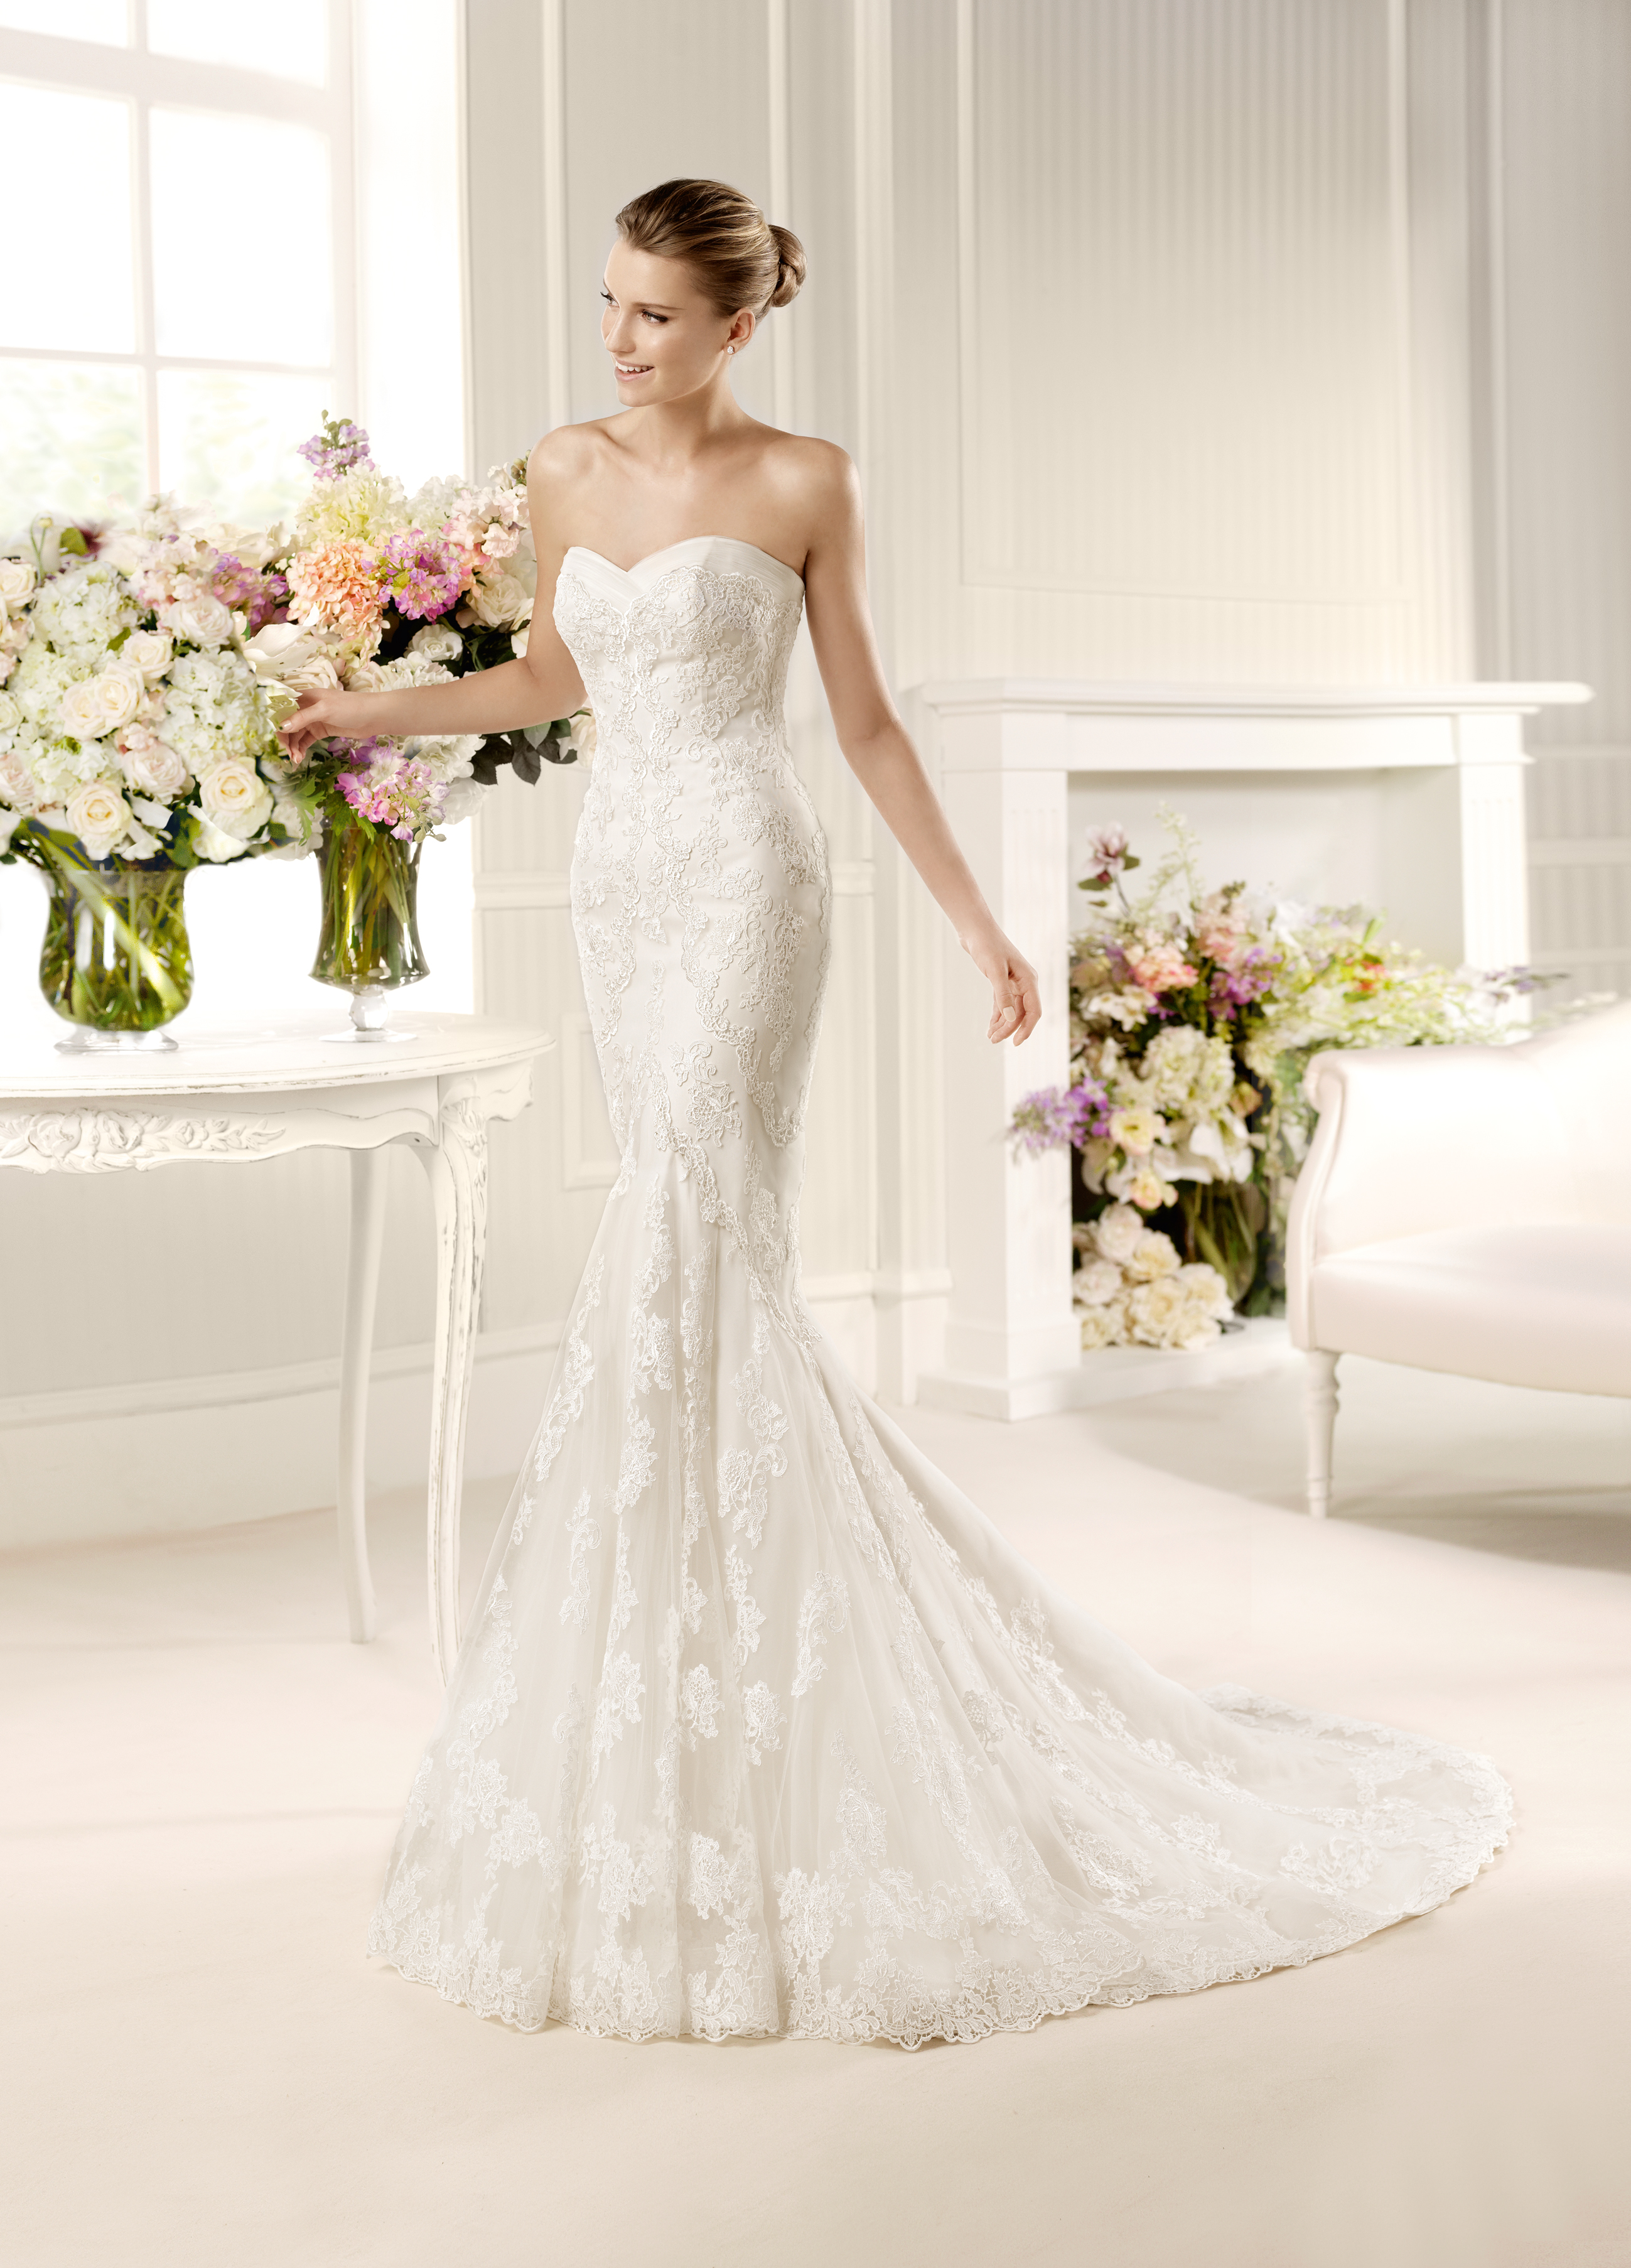 Good wedding dresses for hourglass shape body